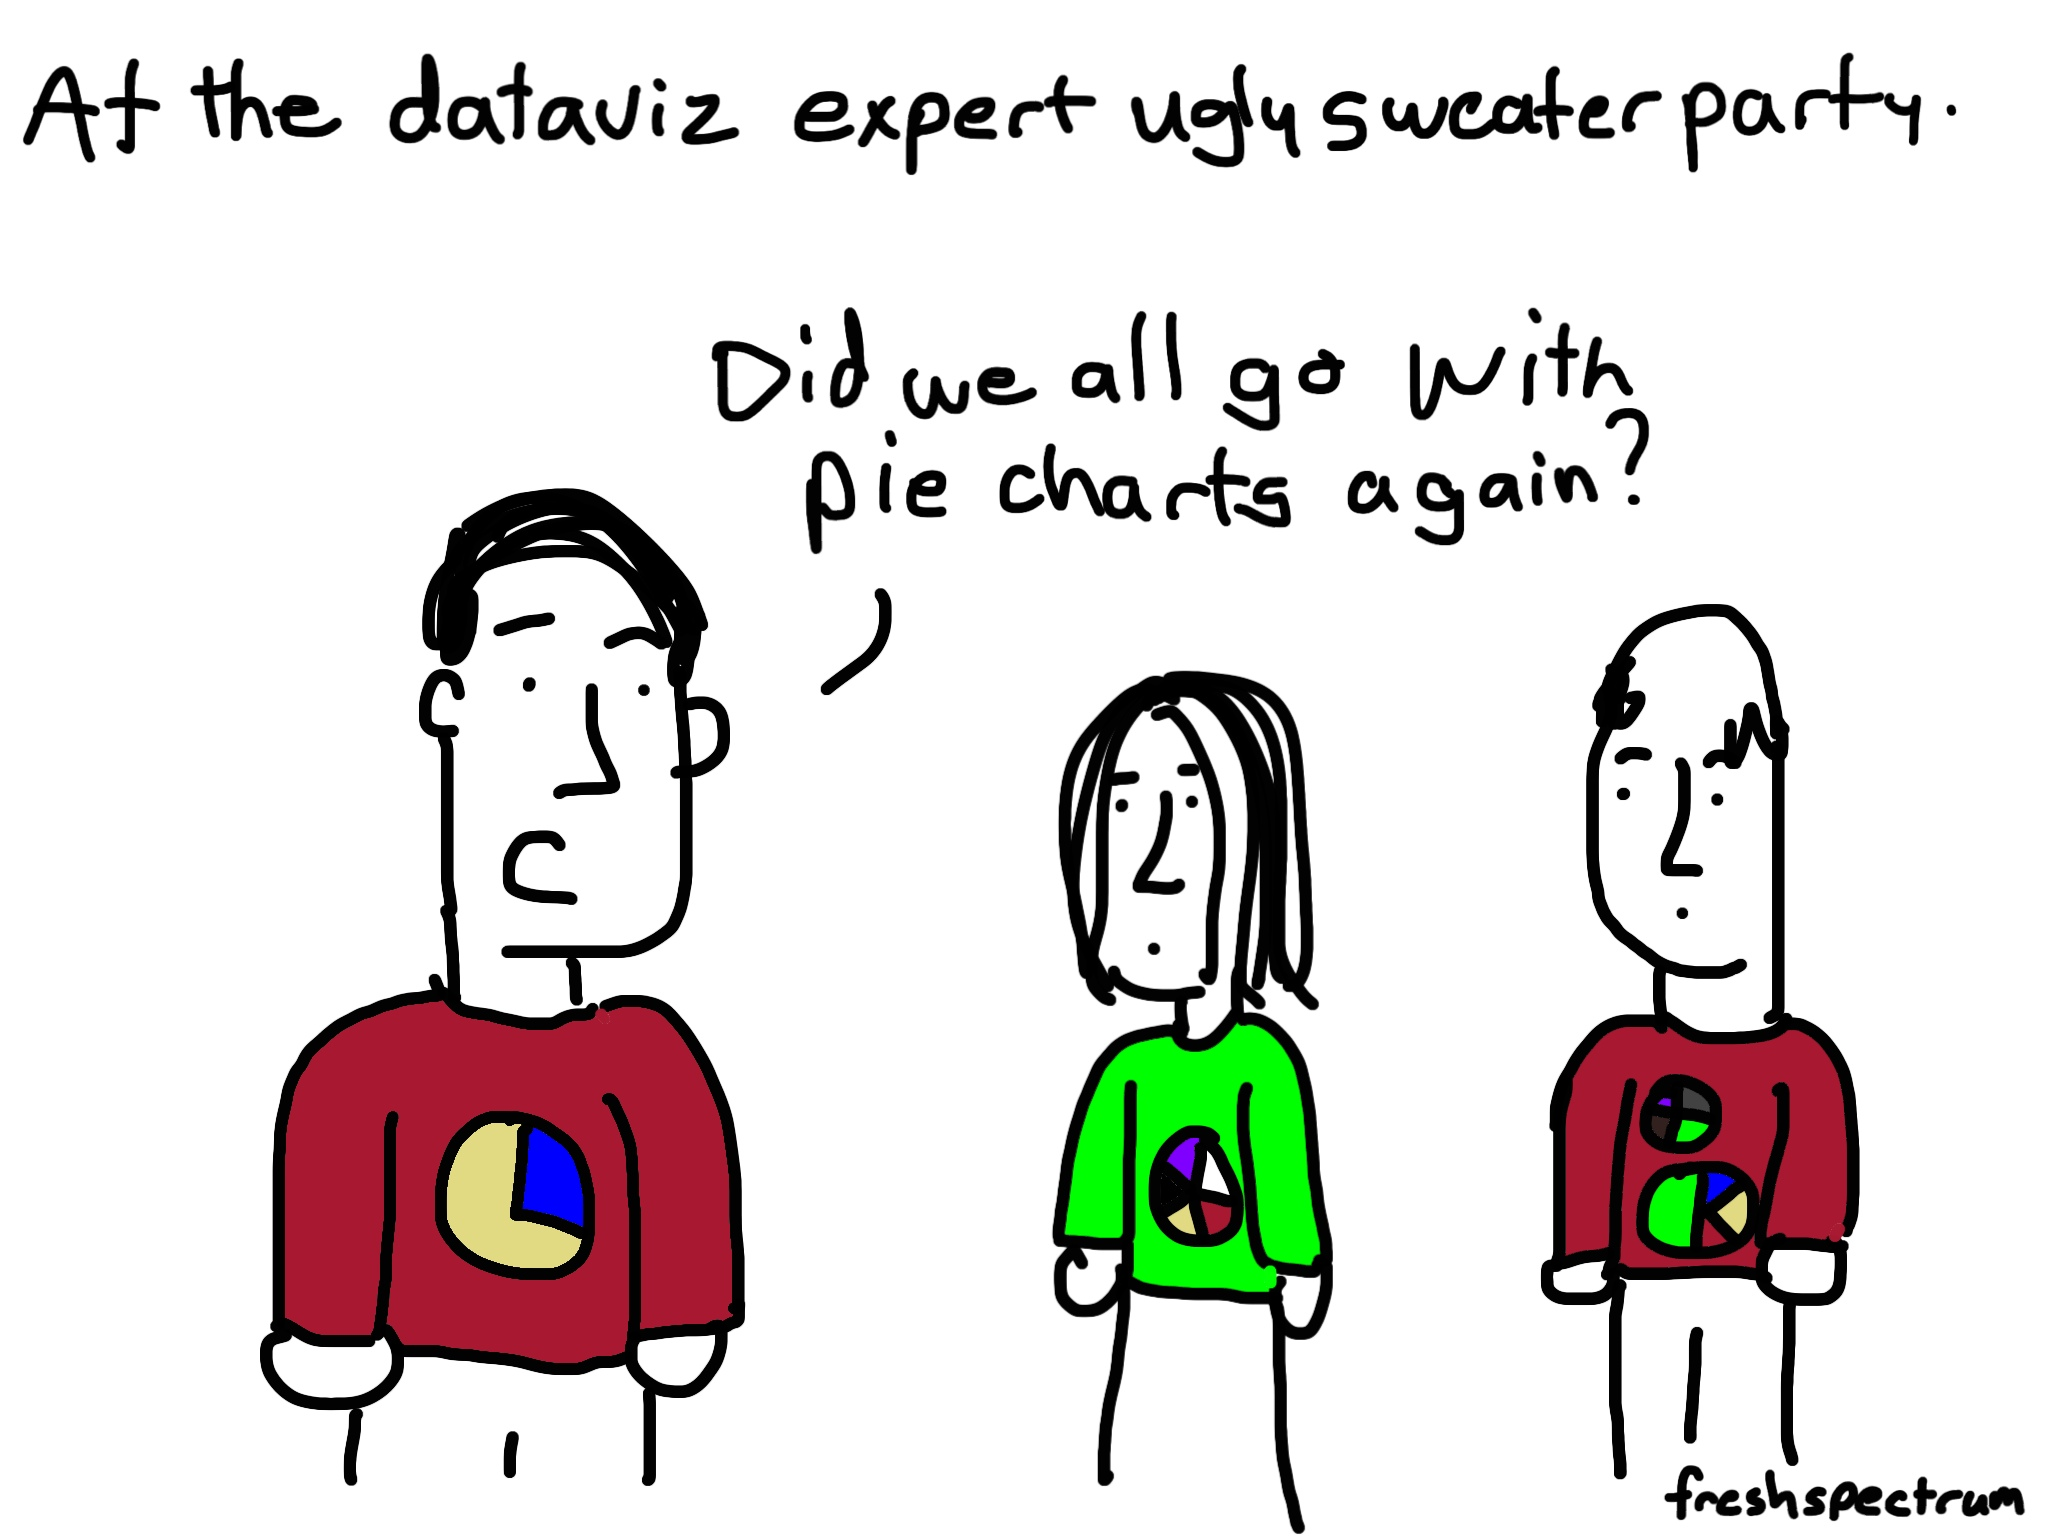 At the dataviz expert ugly sweater party cartoon by Chris Lysy